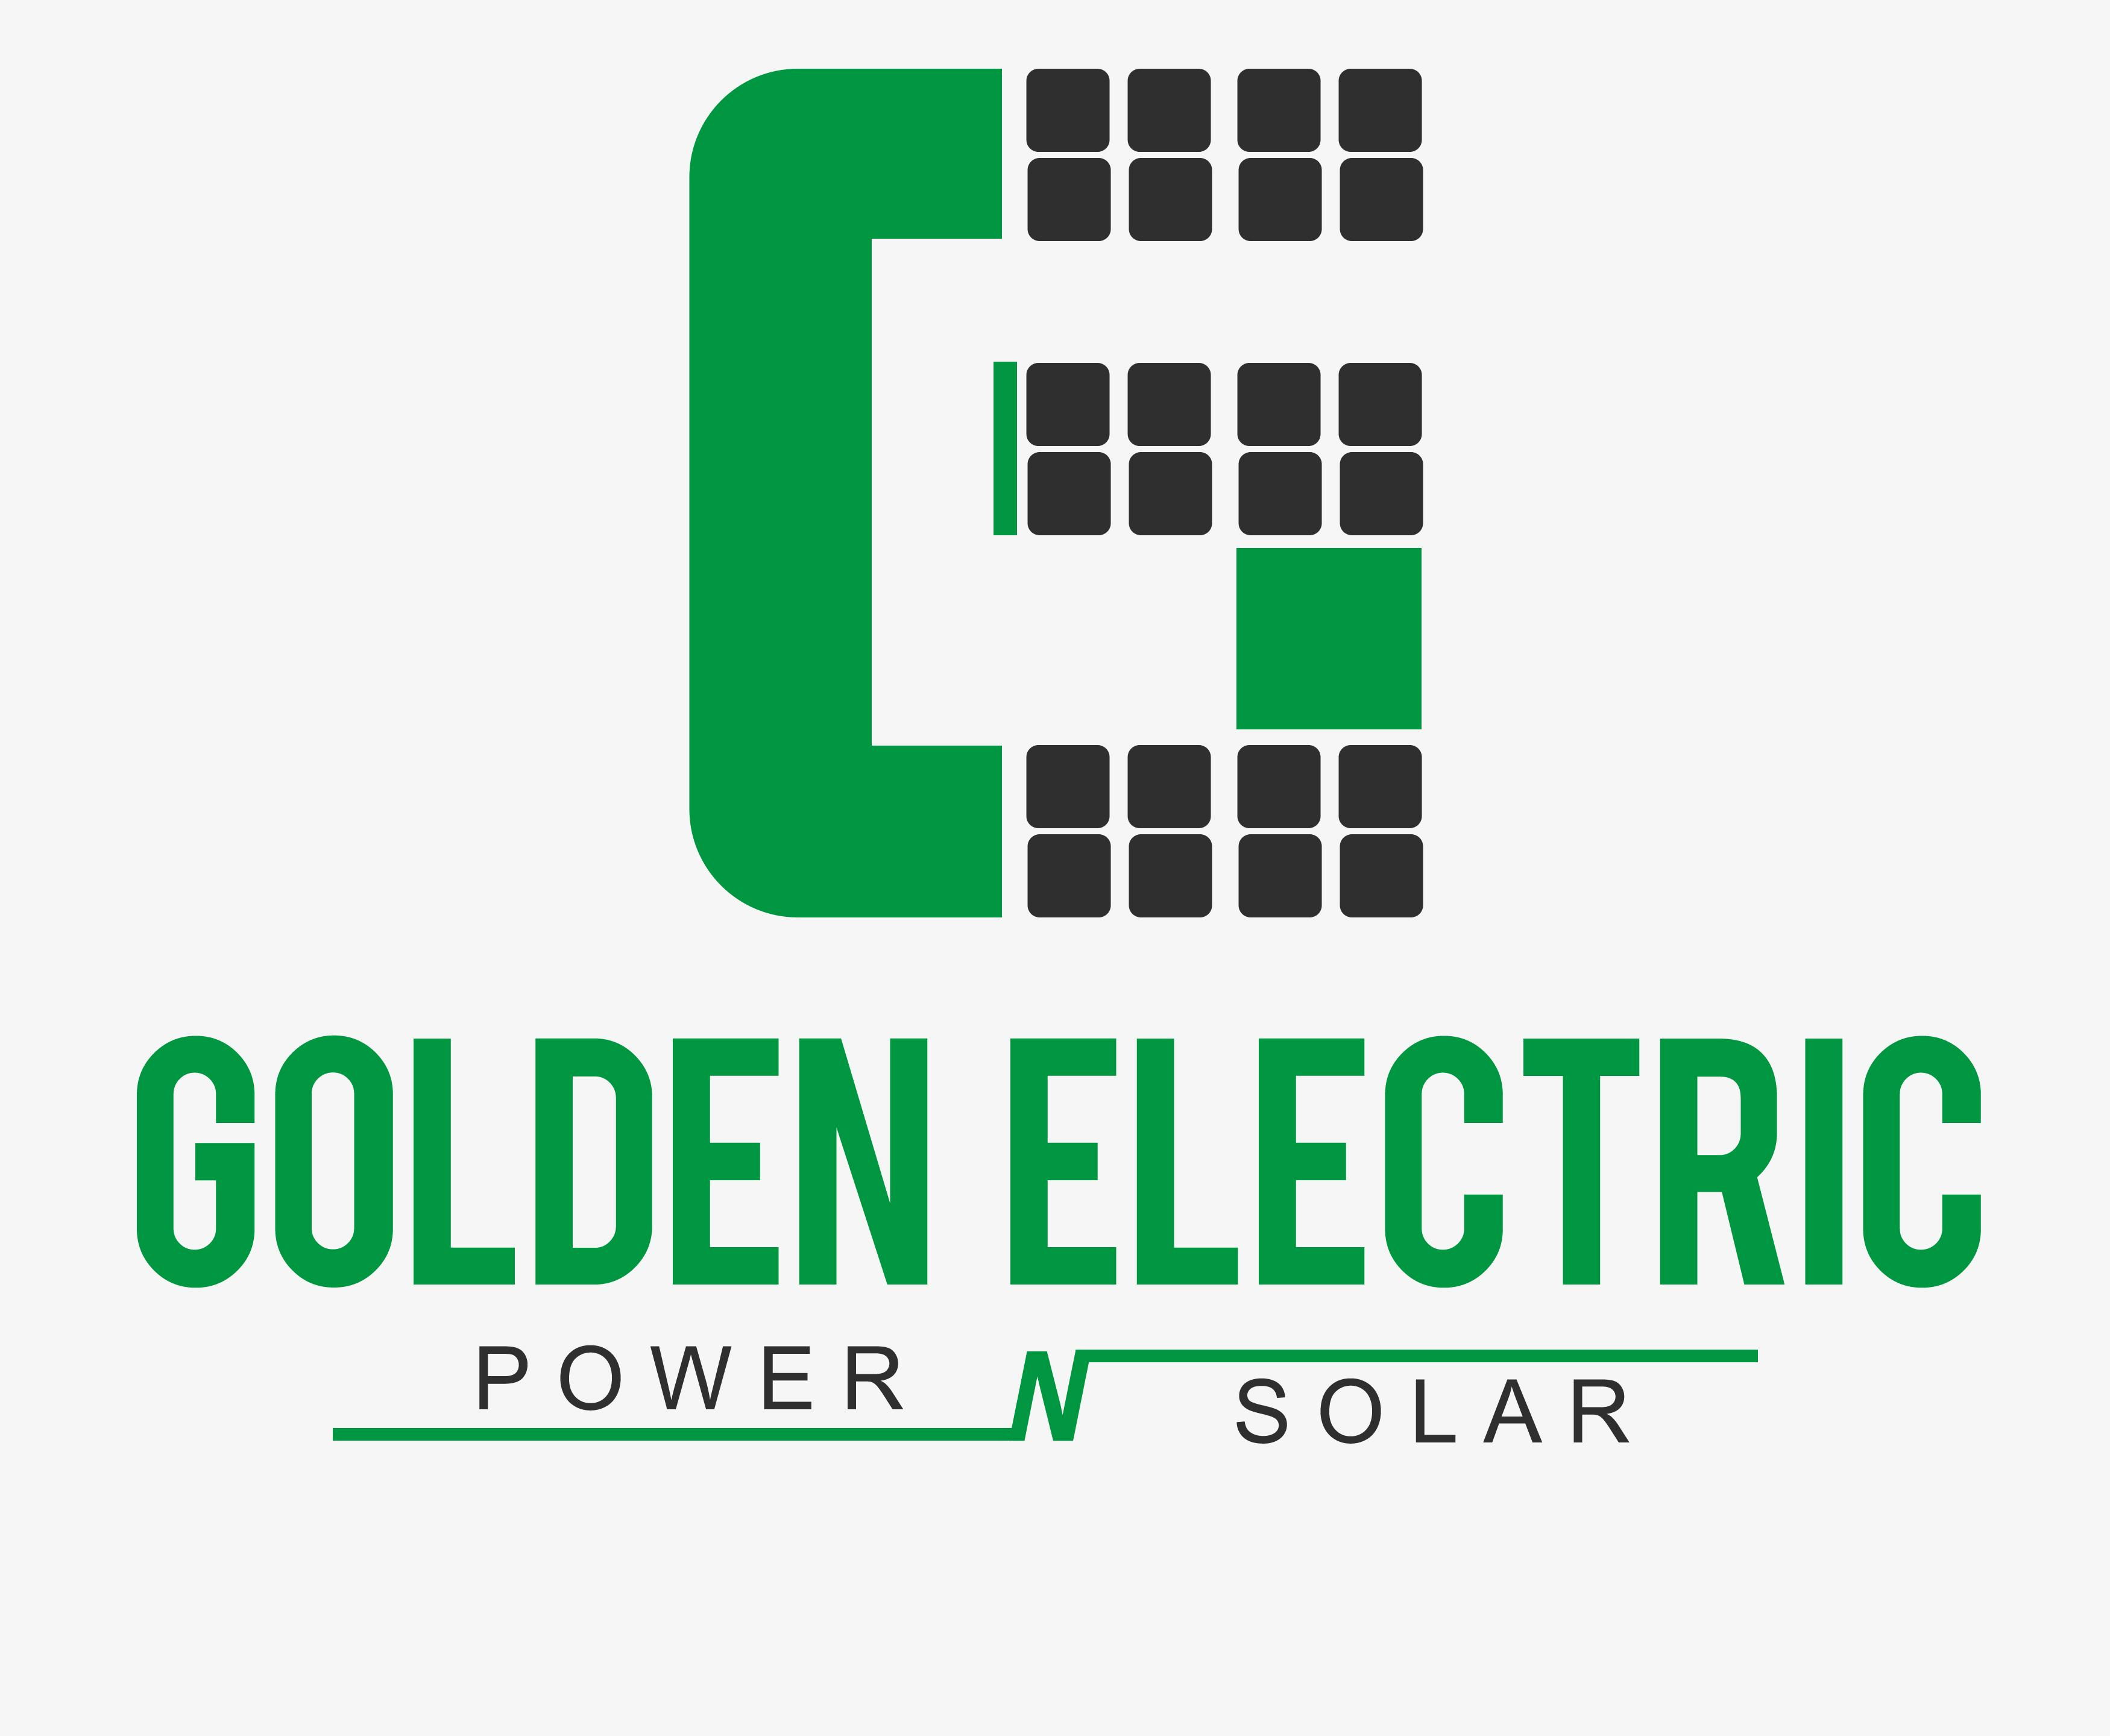 Golden Electric Power N Solar - logo